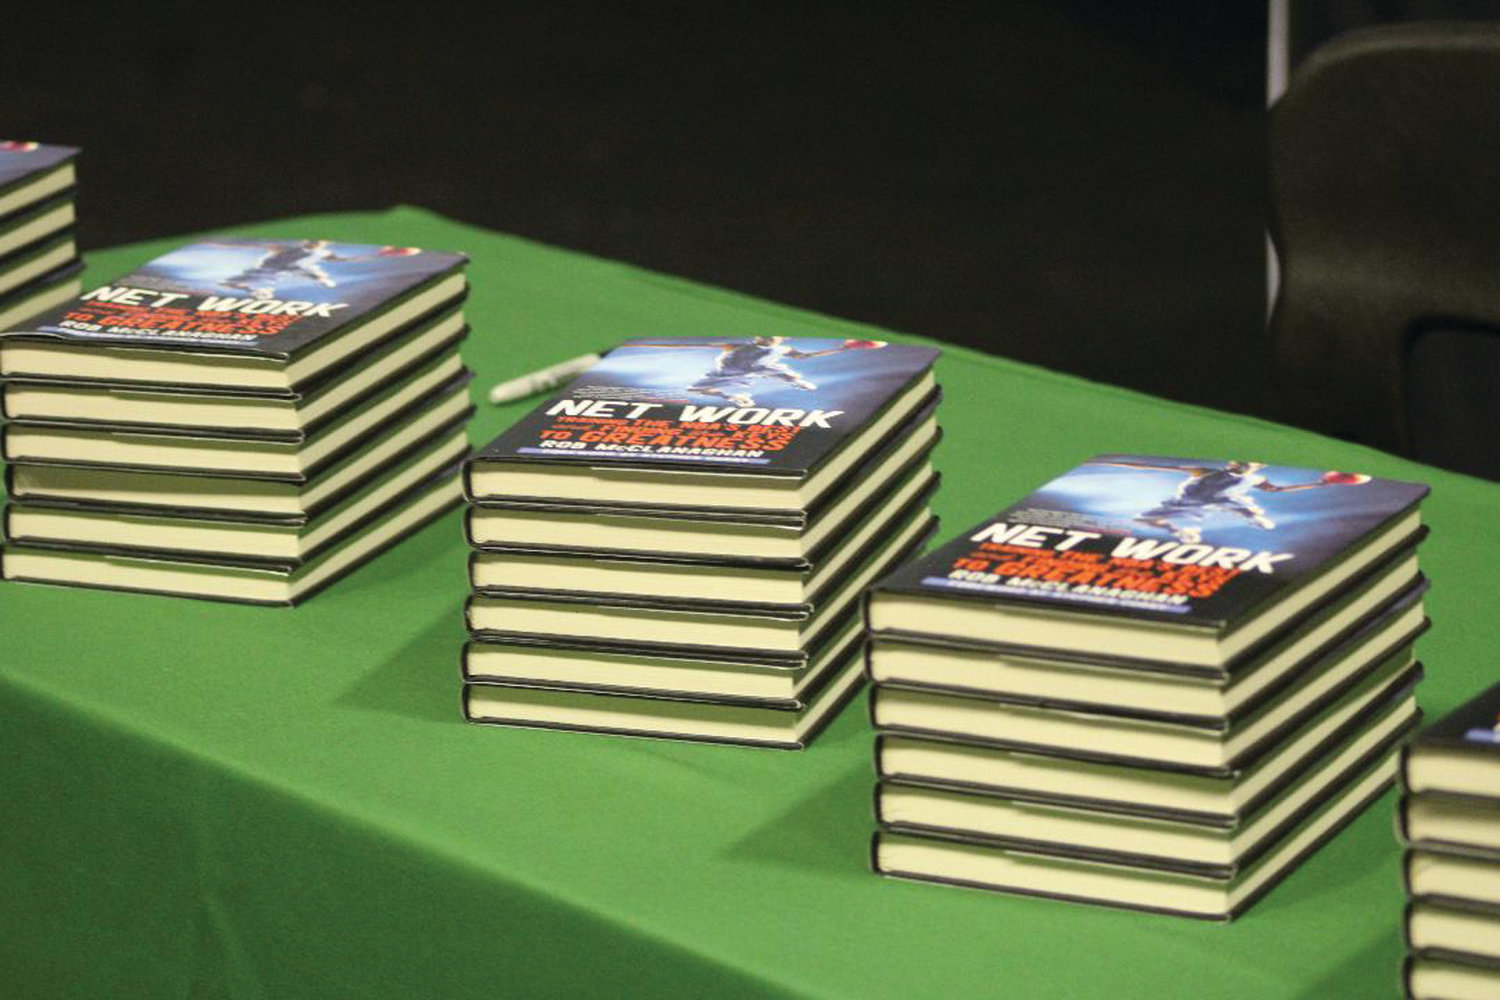 ON DISPLAY: Copies of Rob McClanaghan's new book were on display at Hendricken on Tuesday.